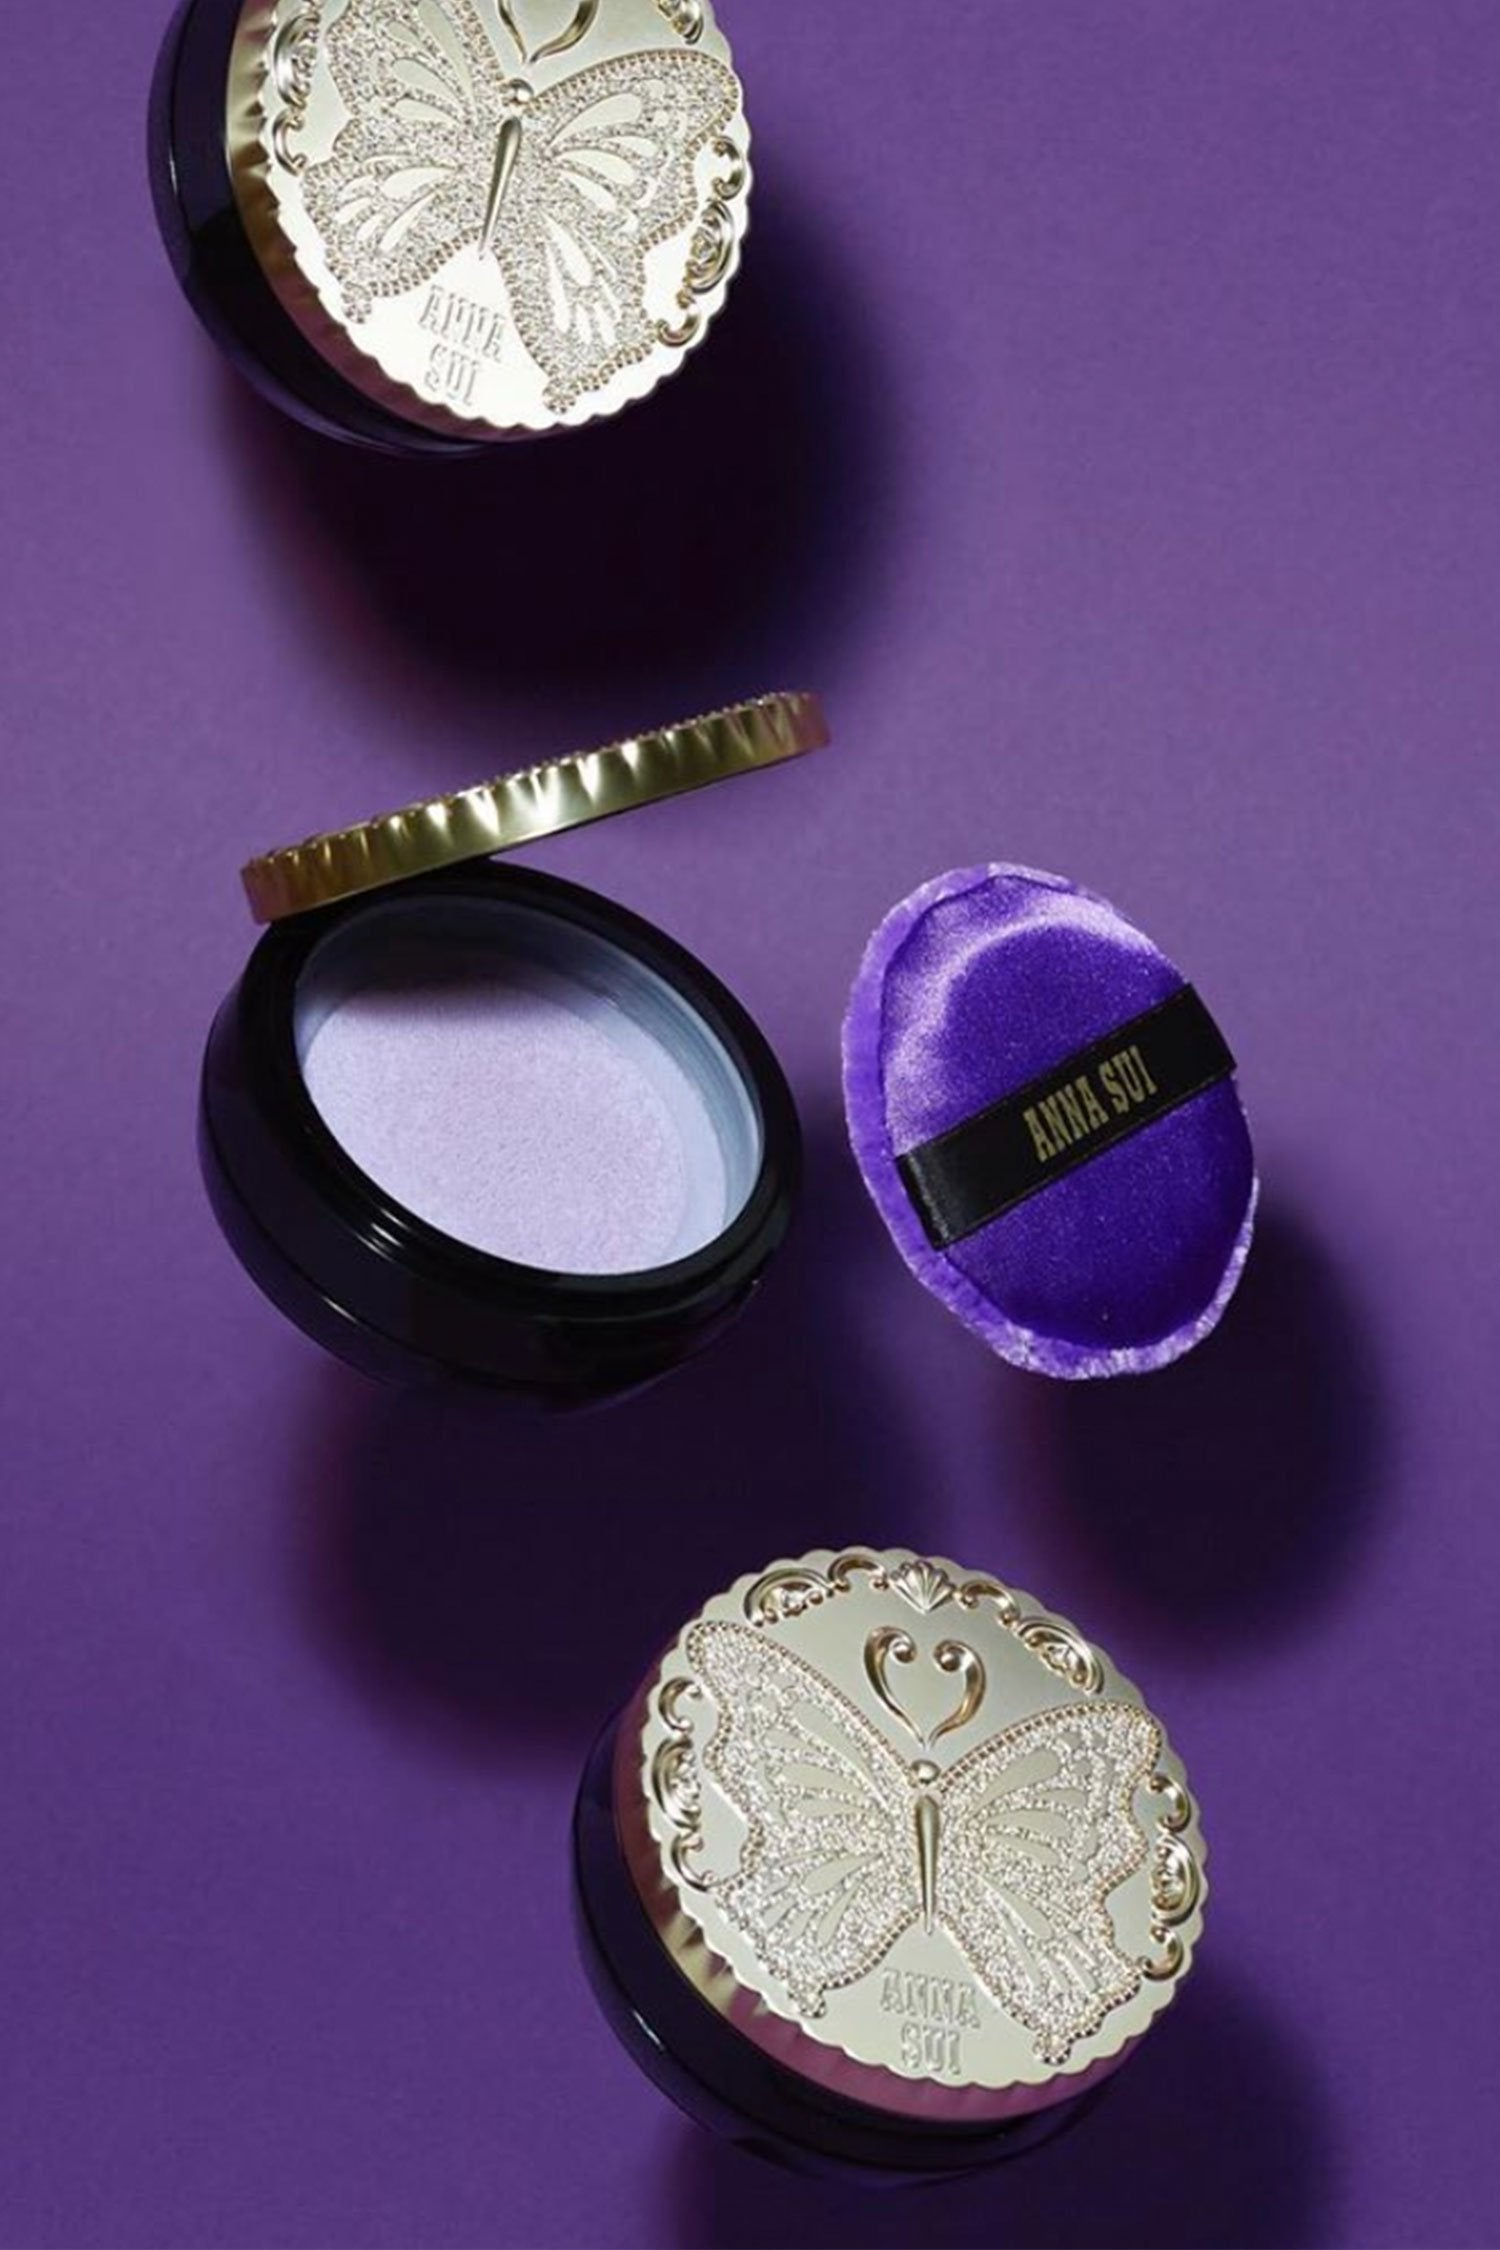 New: Mini Loose Powder Set - Anna Sui